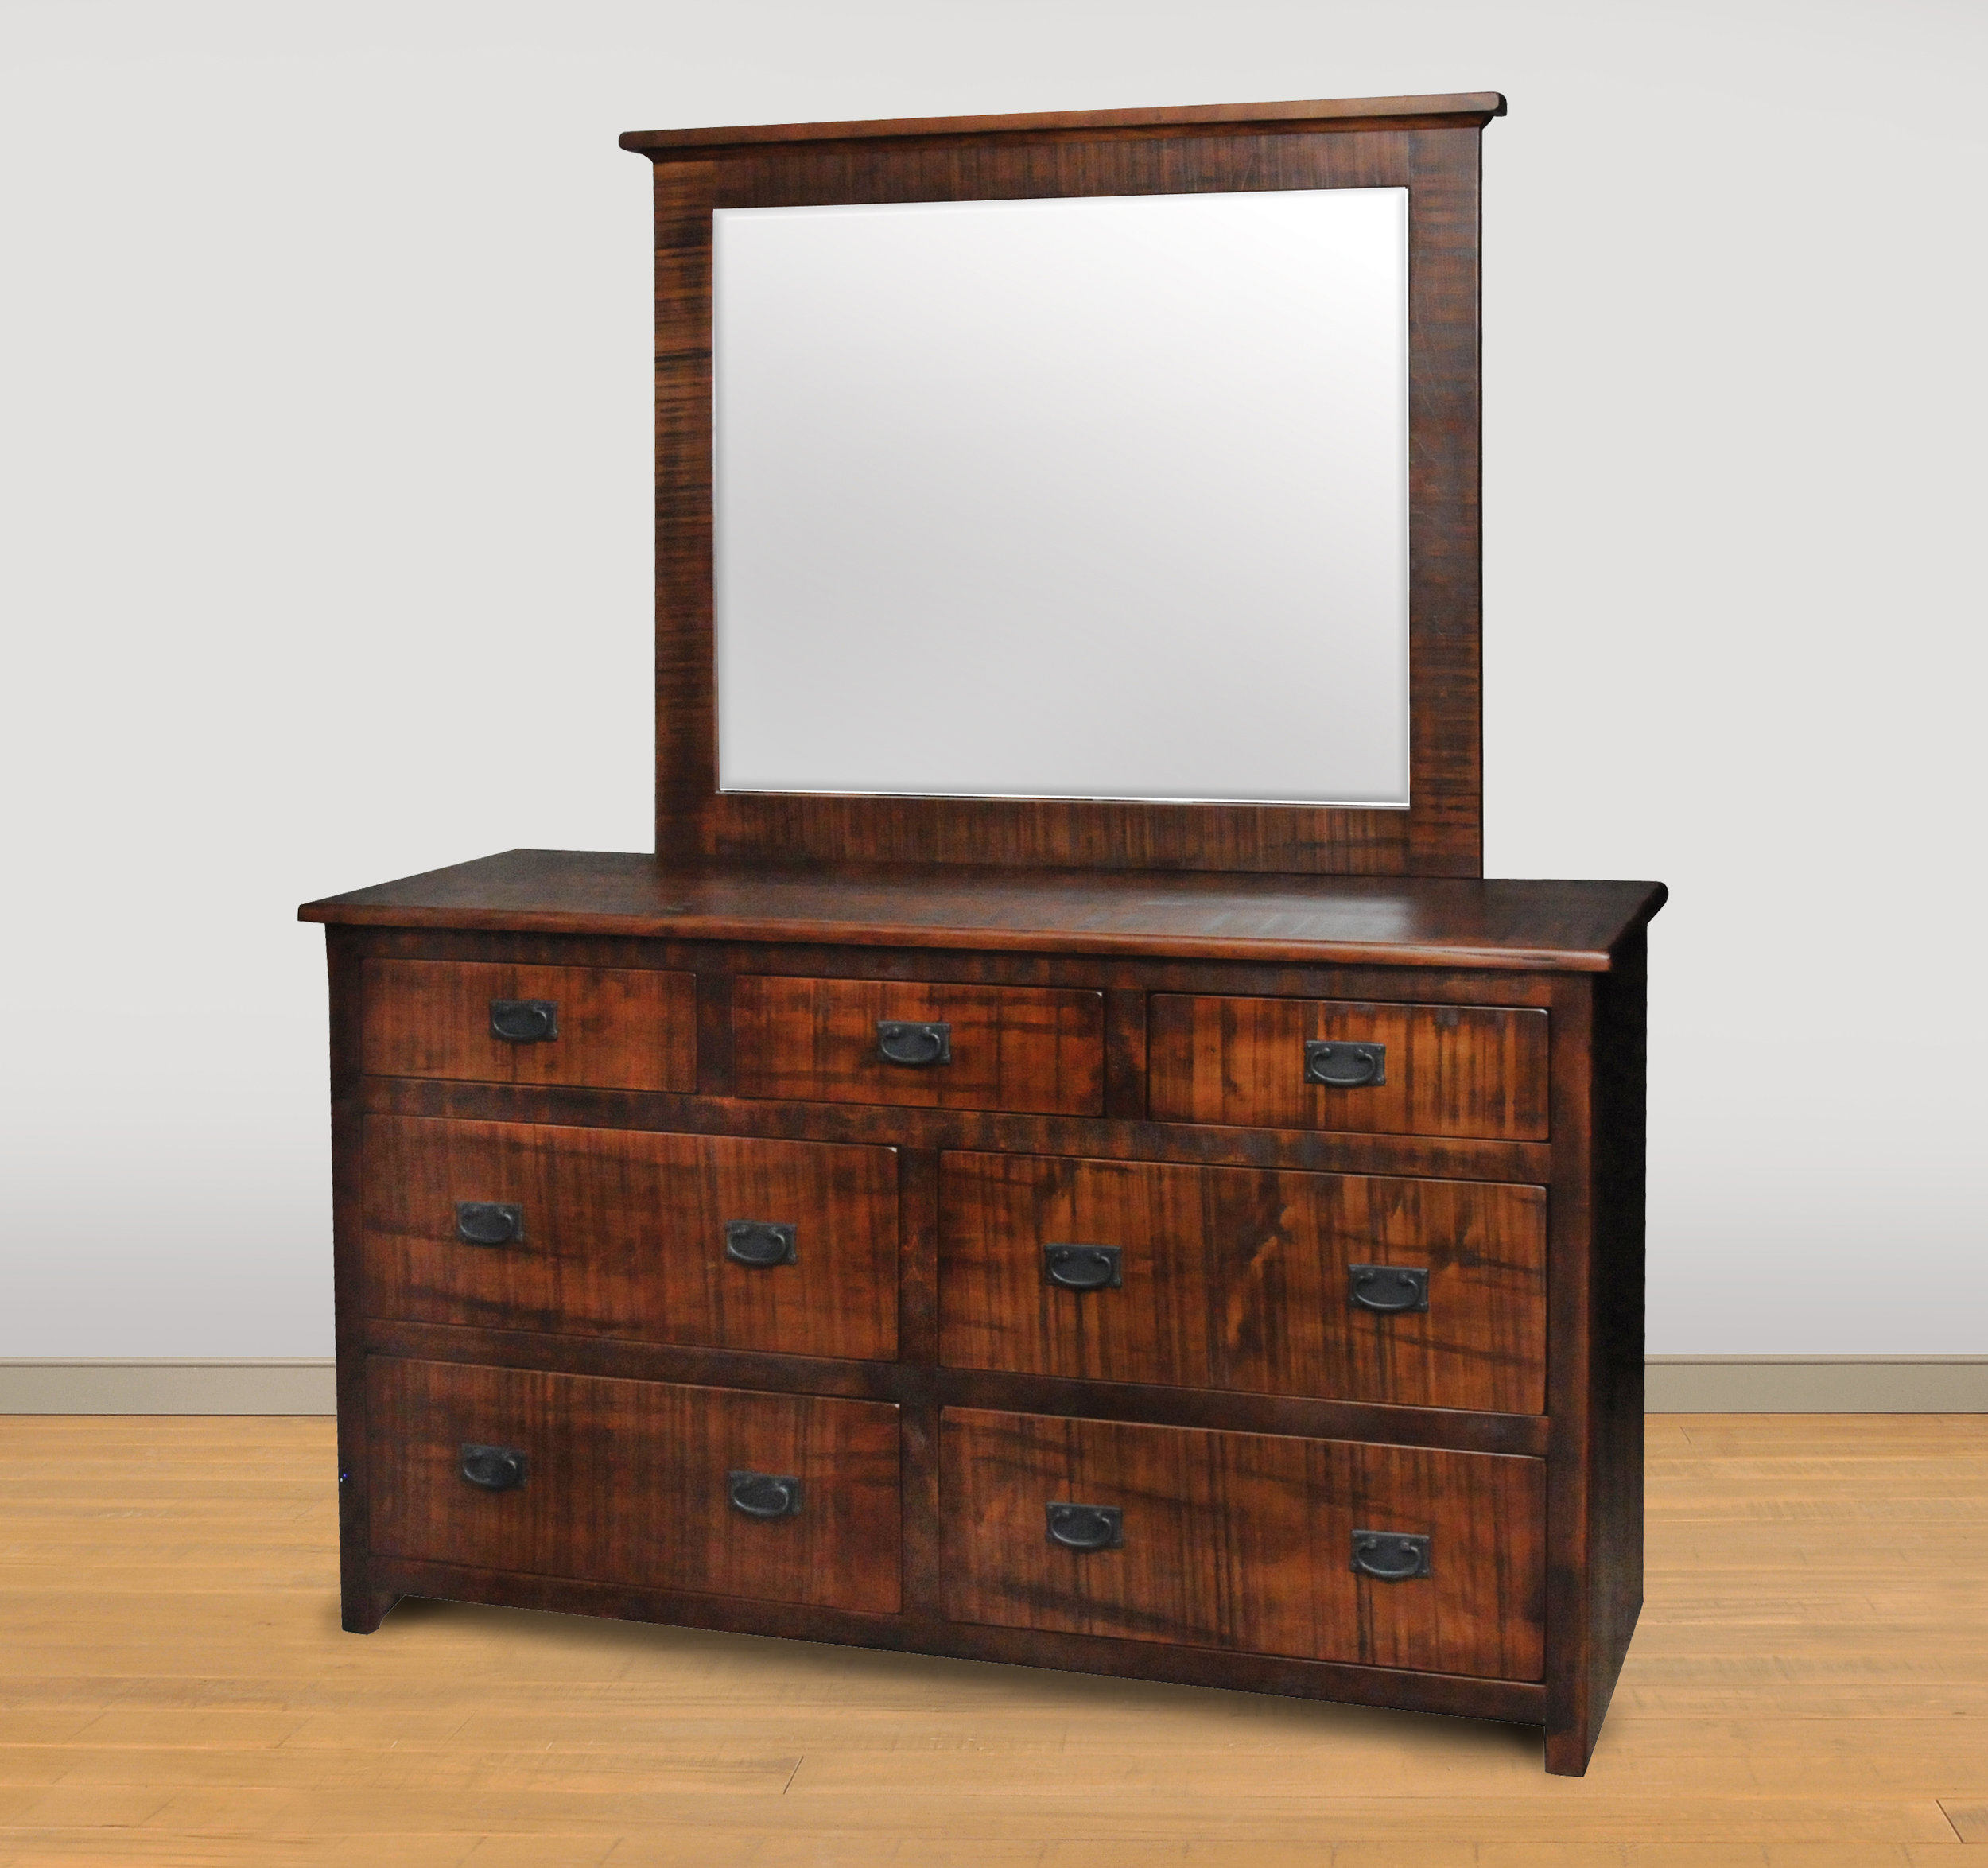 Quality Amish furniture in PA